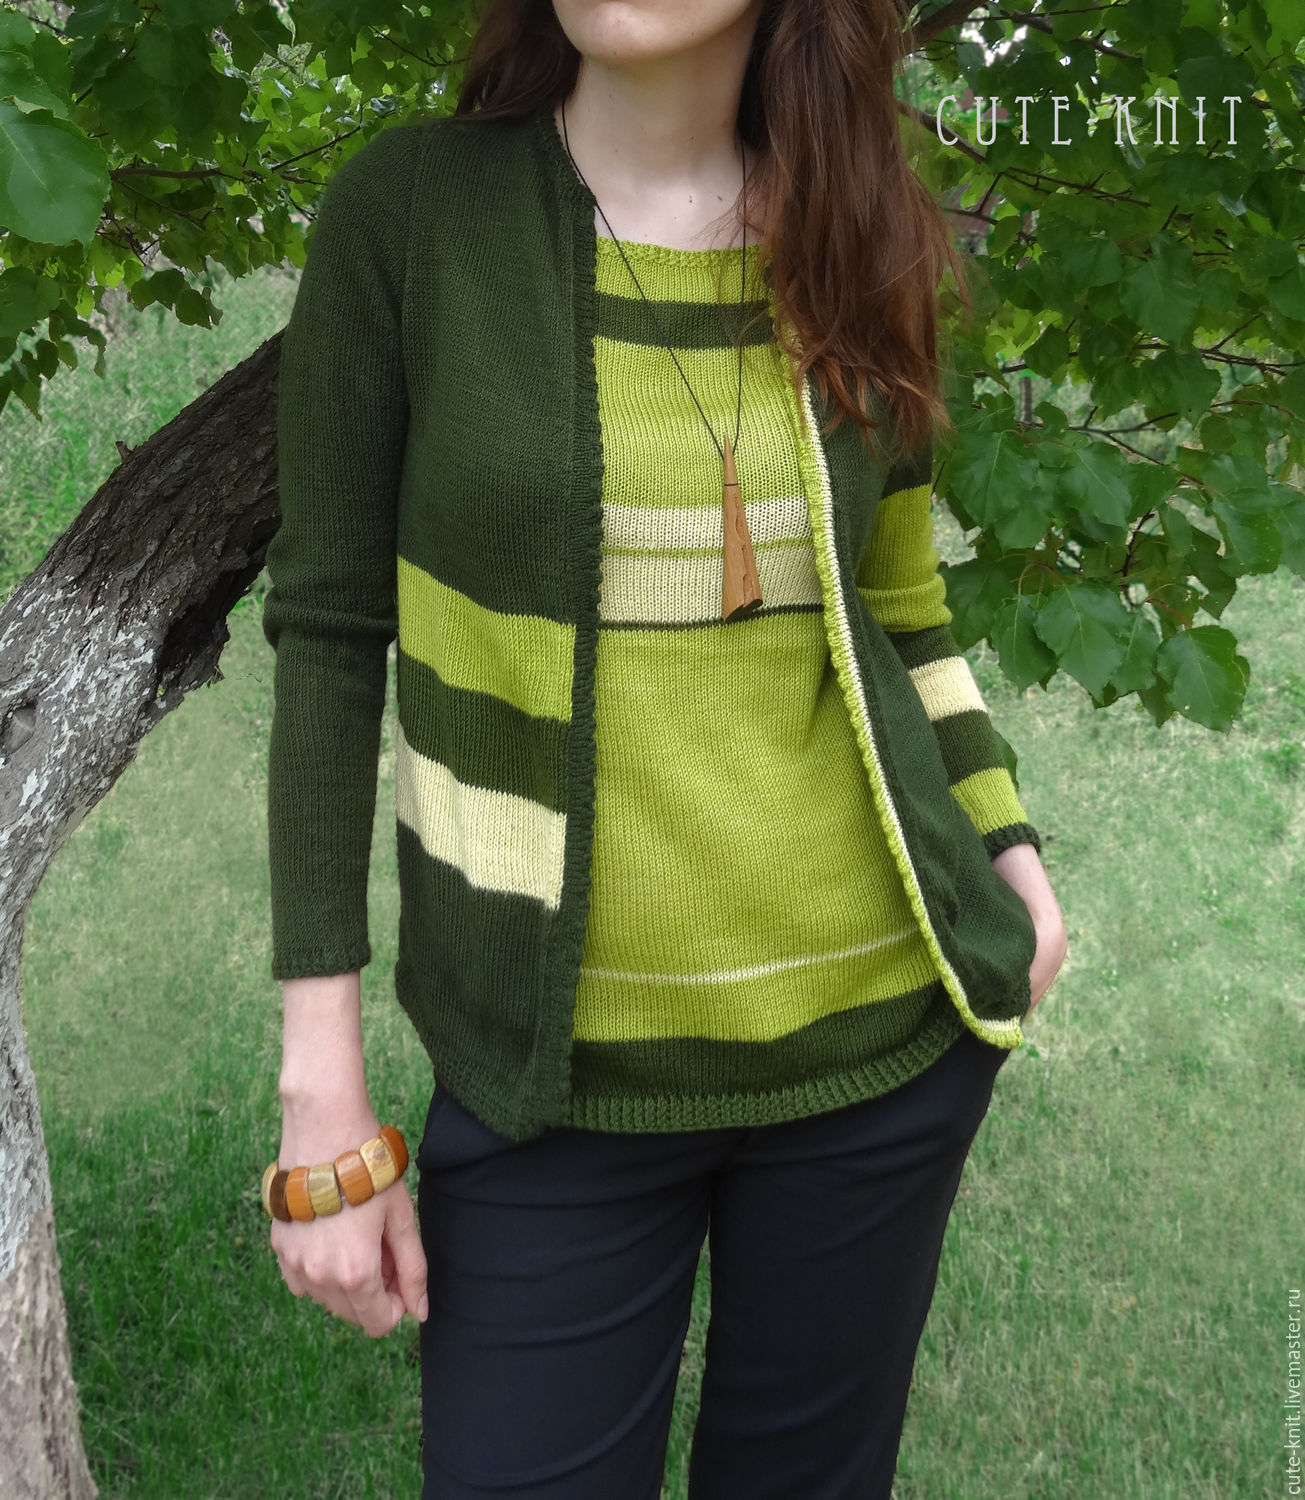 To better visualize the model, click on the photo CUTE-KNIT NAT Onipchenko Fair masters to Buy the jacket and bilateral top